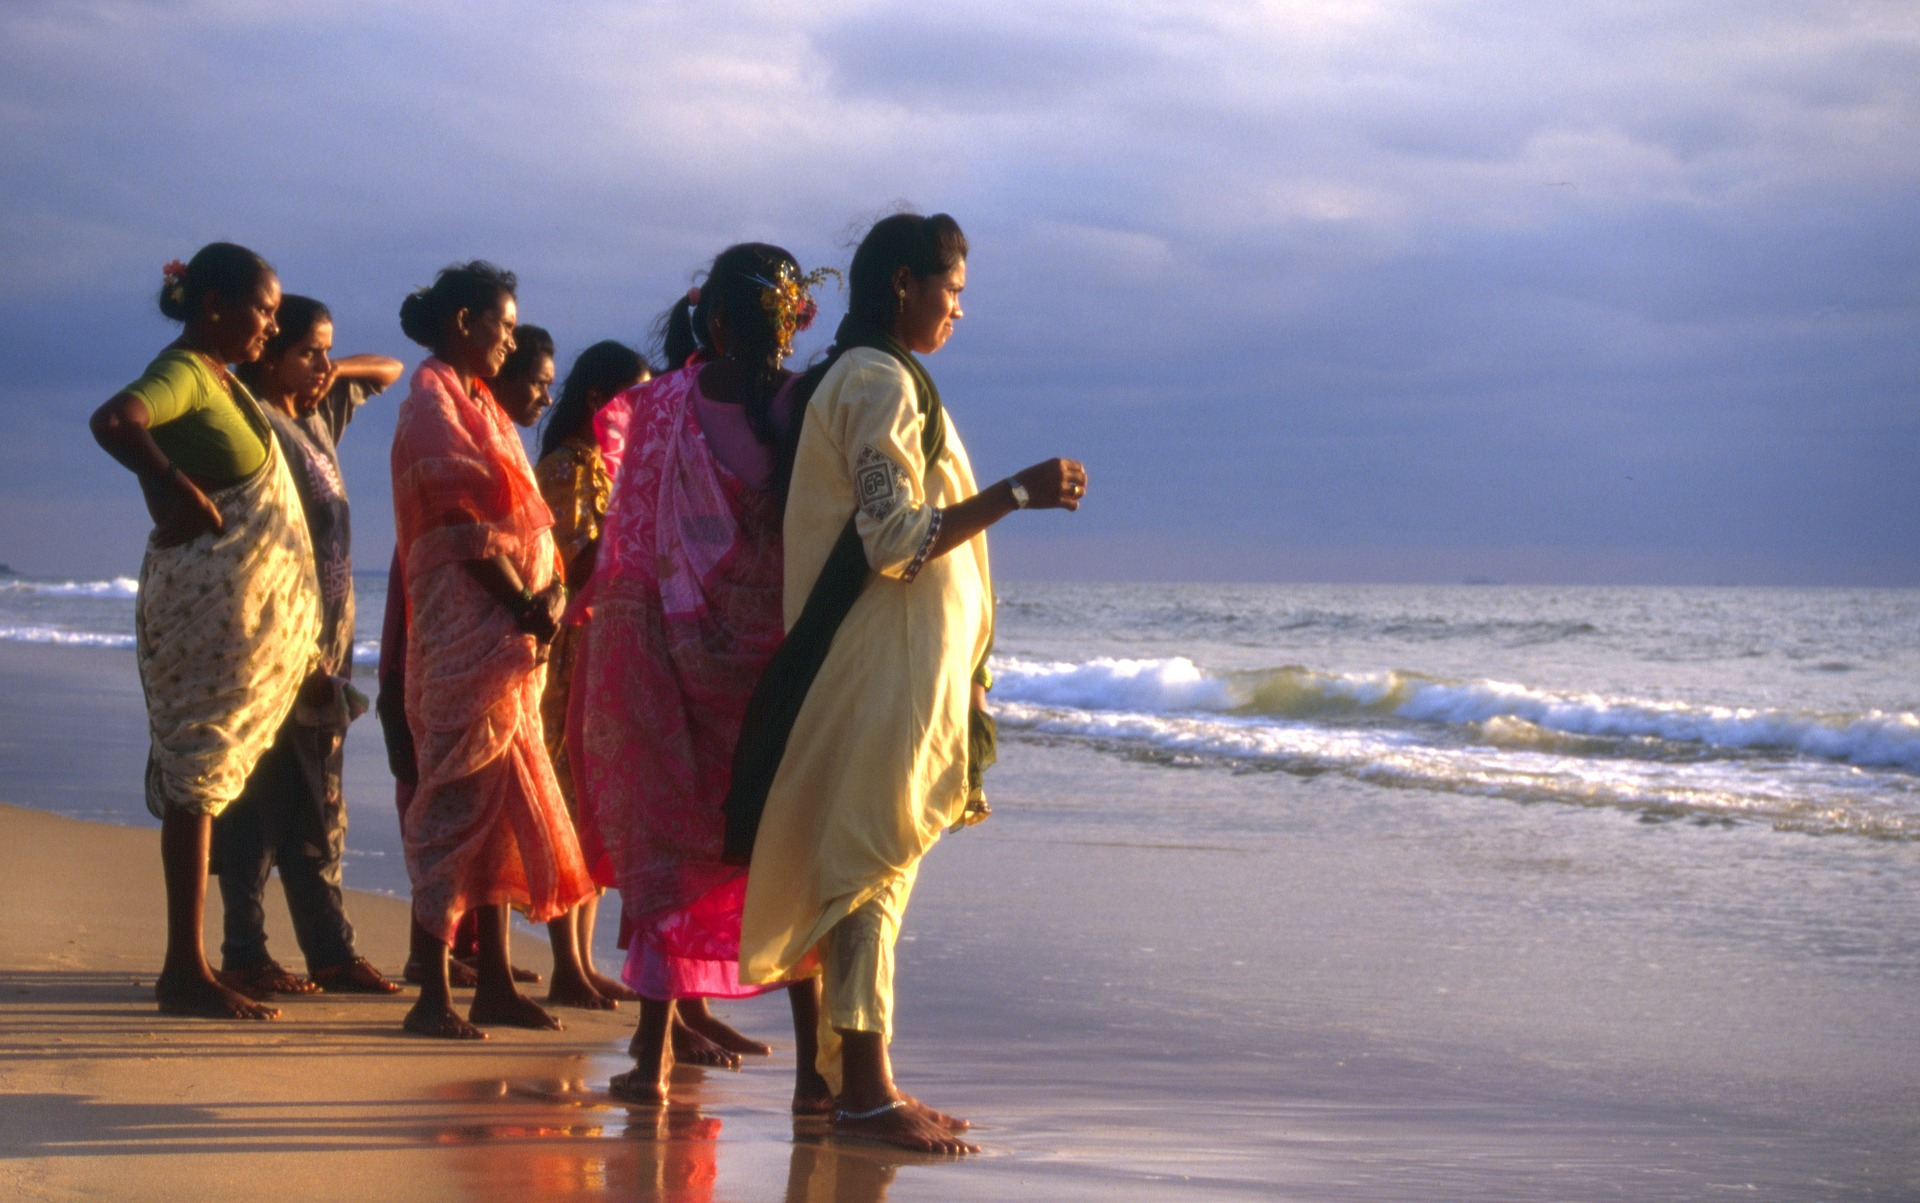 Women on the beach at Calangute, Goa. (Photo: Pixabay)